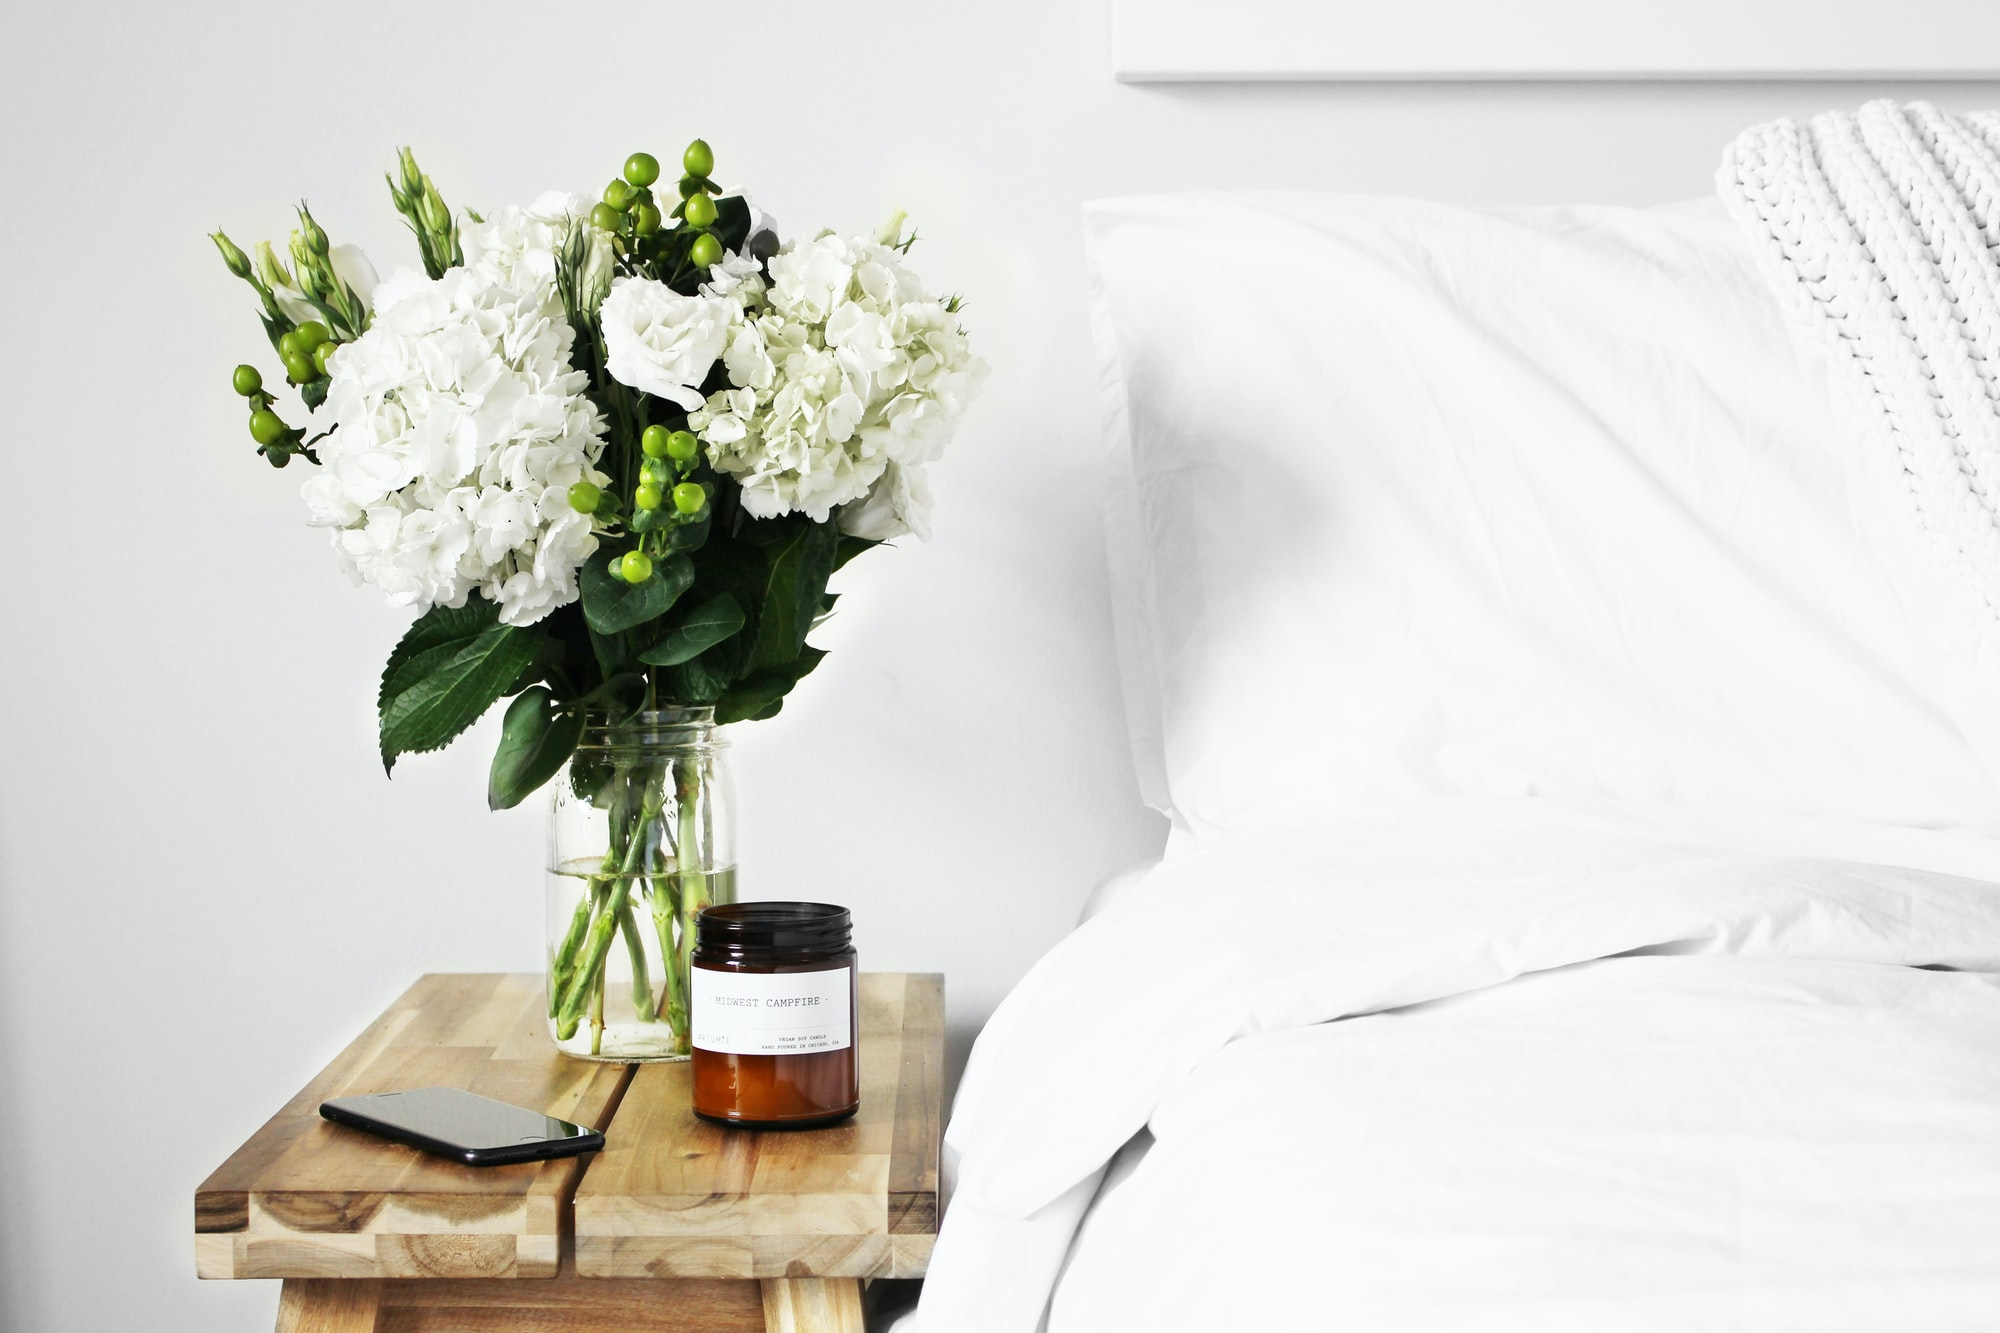 Is there anything better than all-white bedding? It makes me feel like I'm sleeping on a cloud. I made this fresh flower arrangement from flowers I bought at a local shop and had to take a photo.